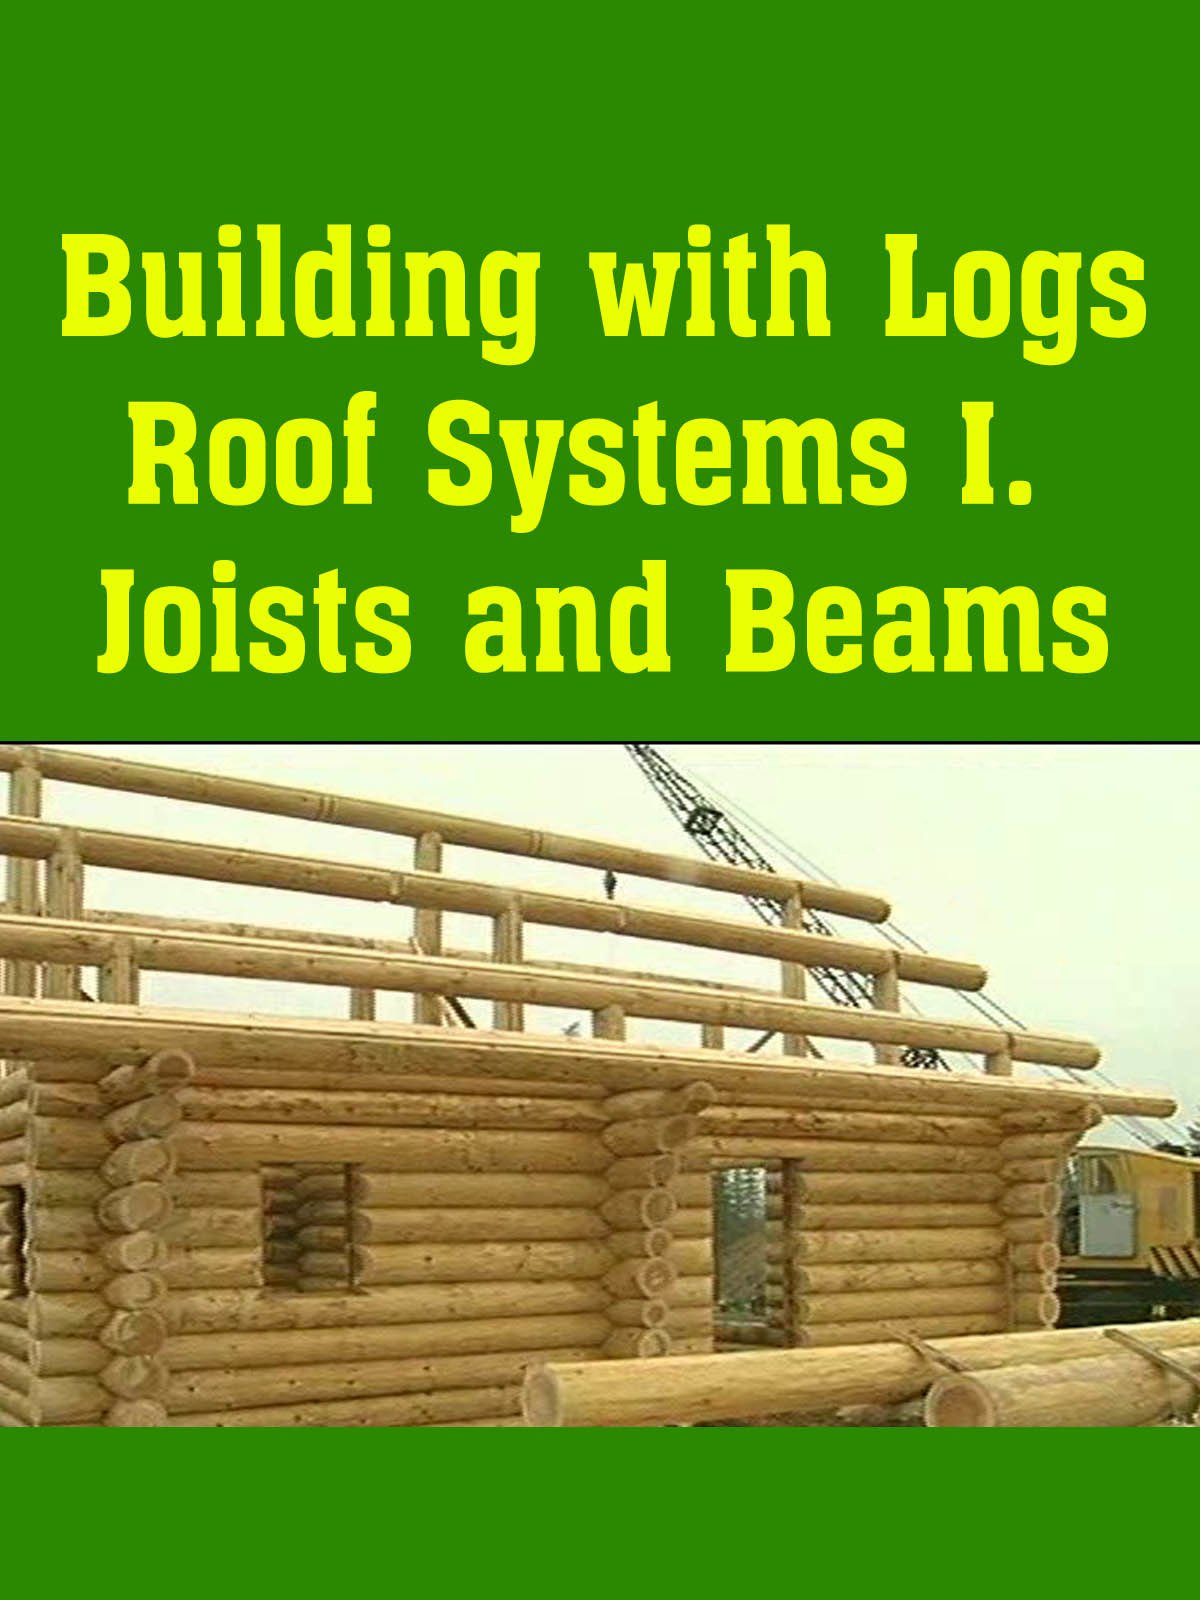 Building with Logs Roof Systems I Joists and Beams